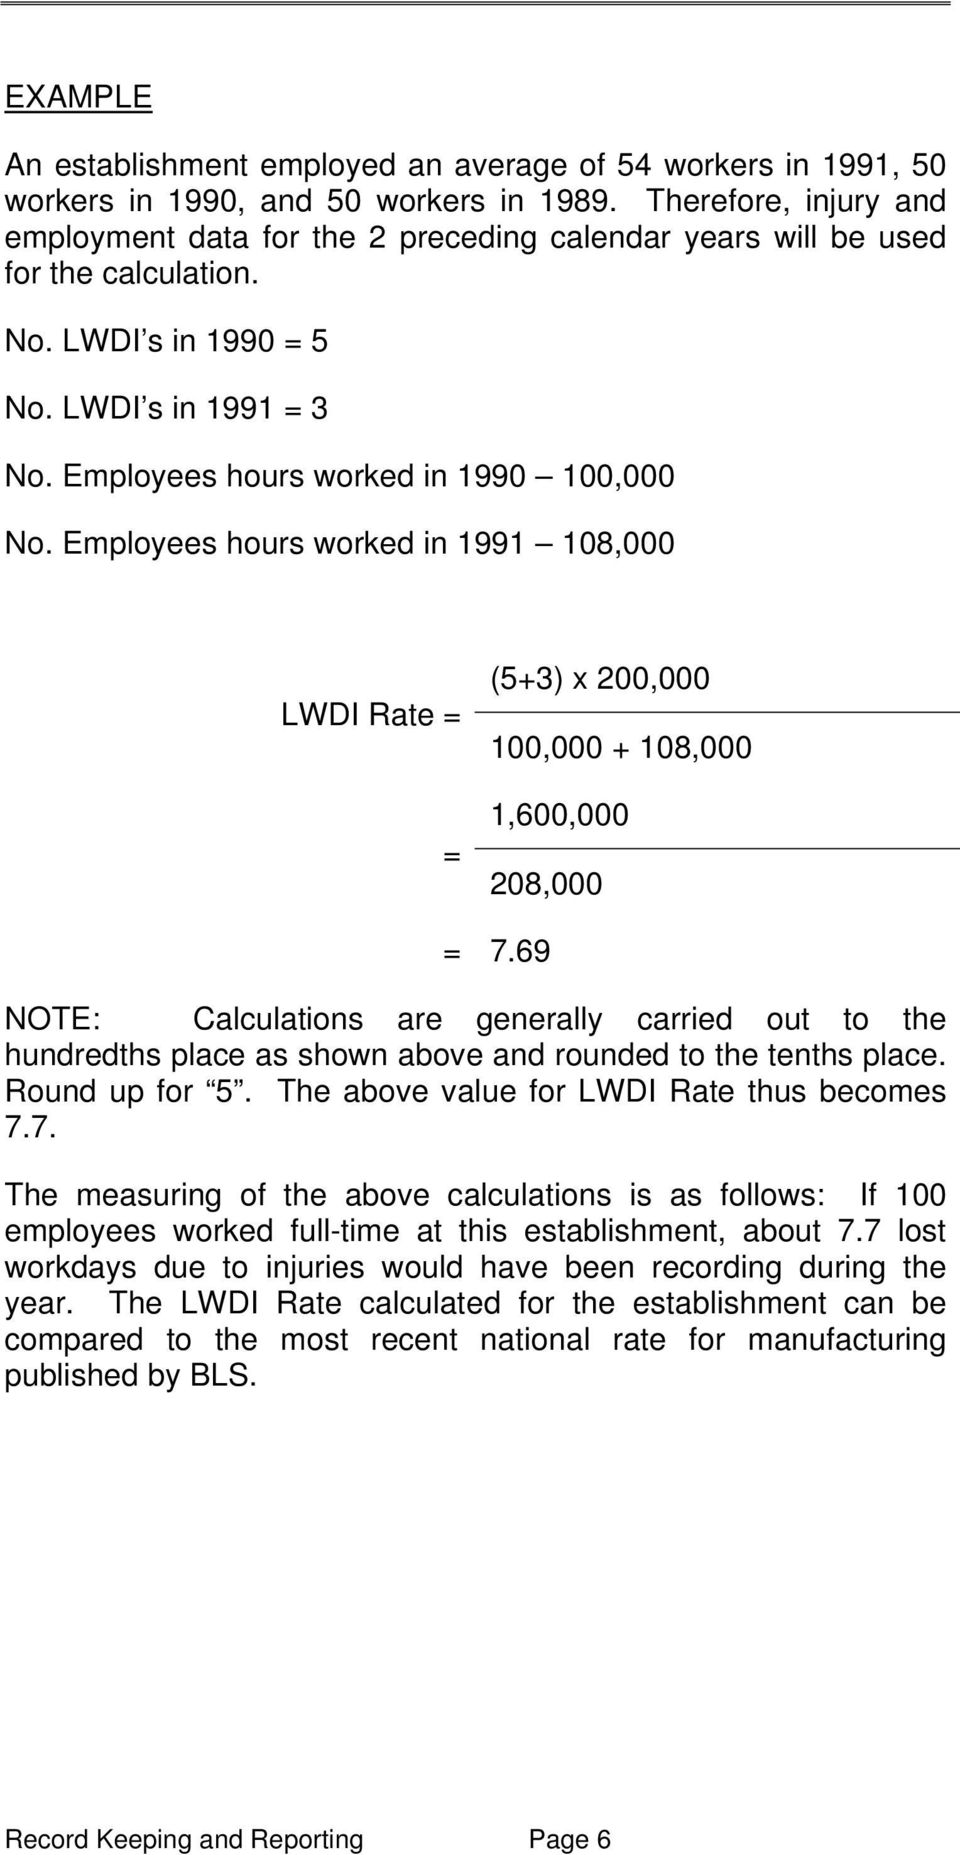 Employees hours worked in 1991 108,000 LWDI Rate = (5+3) x 200,000 100,000 + 108,000 1,600,000 = 208,000 = 7.